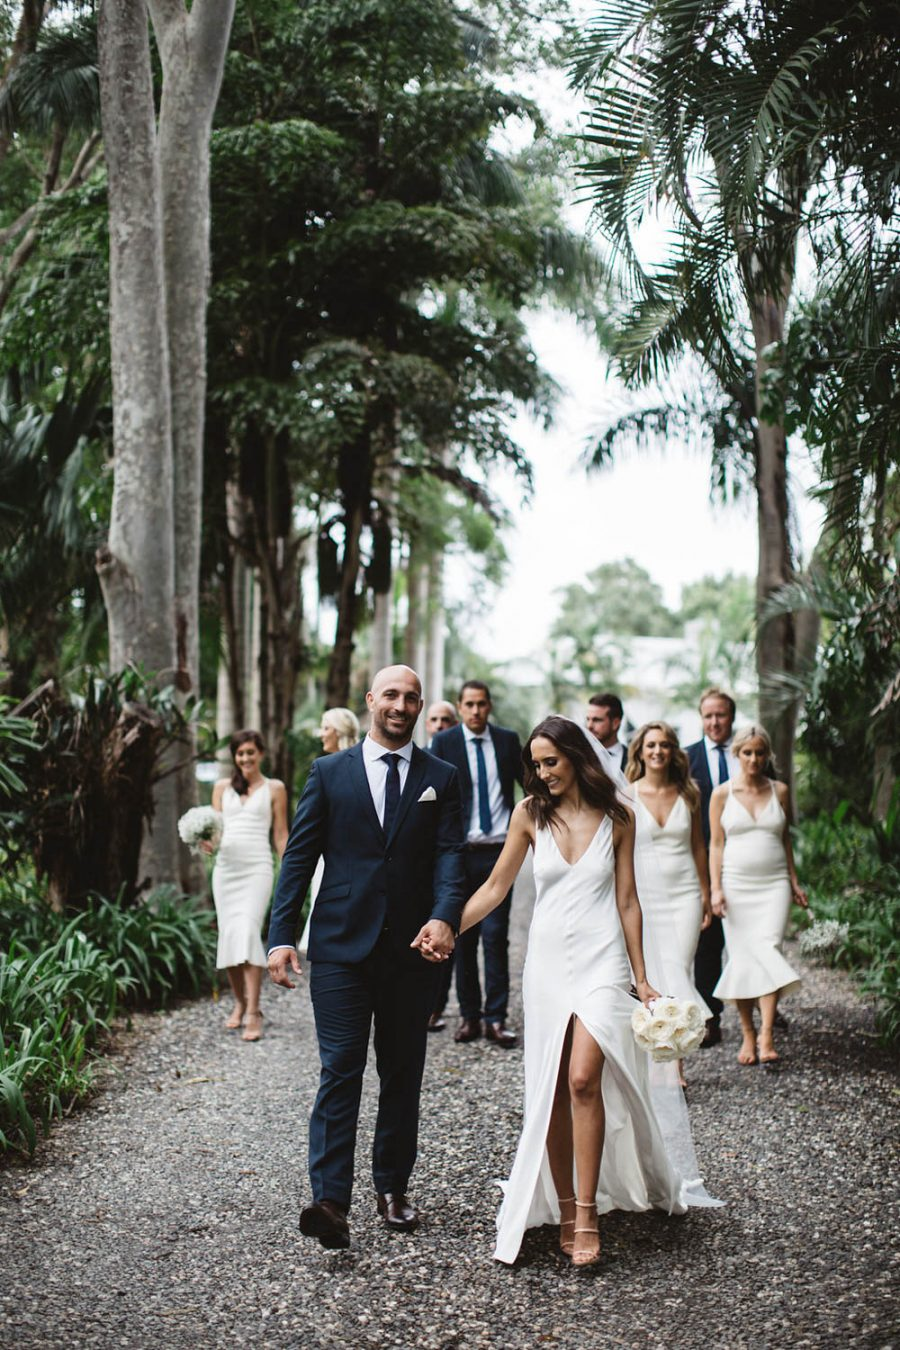 Bridle party walk down path / wedding photography